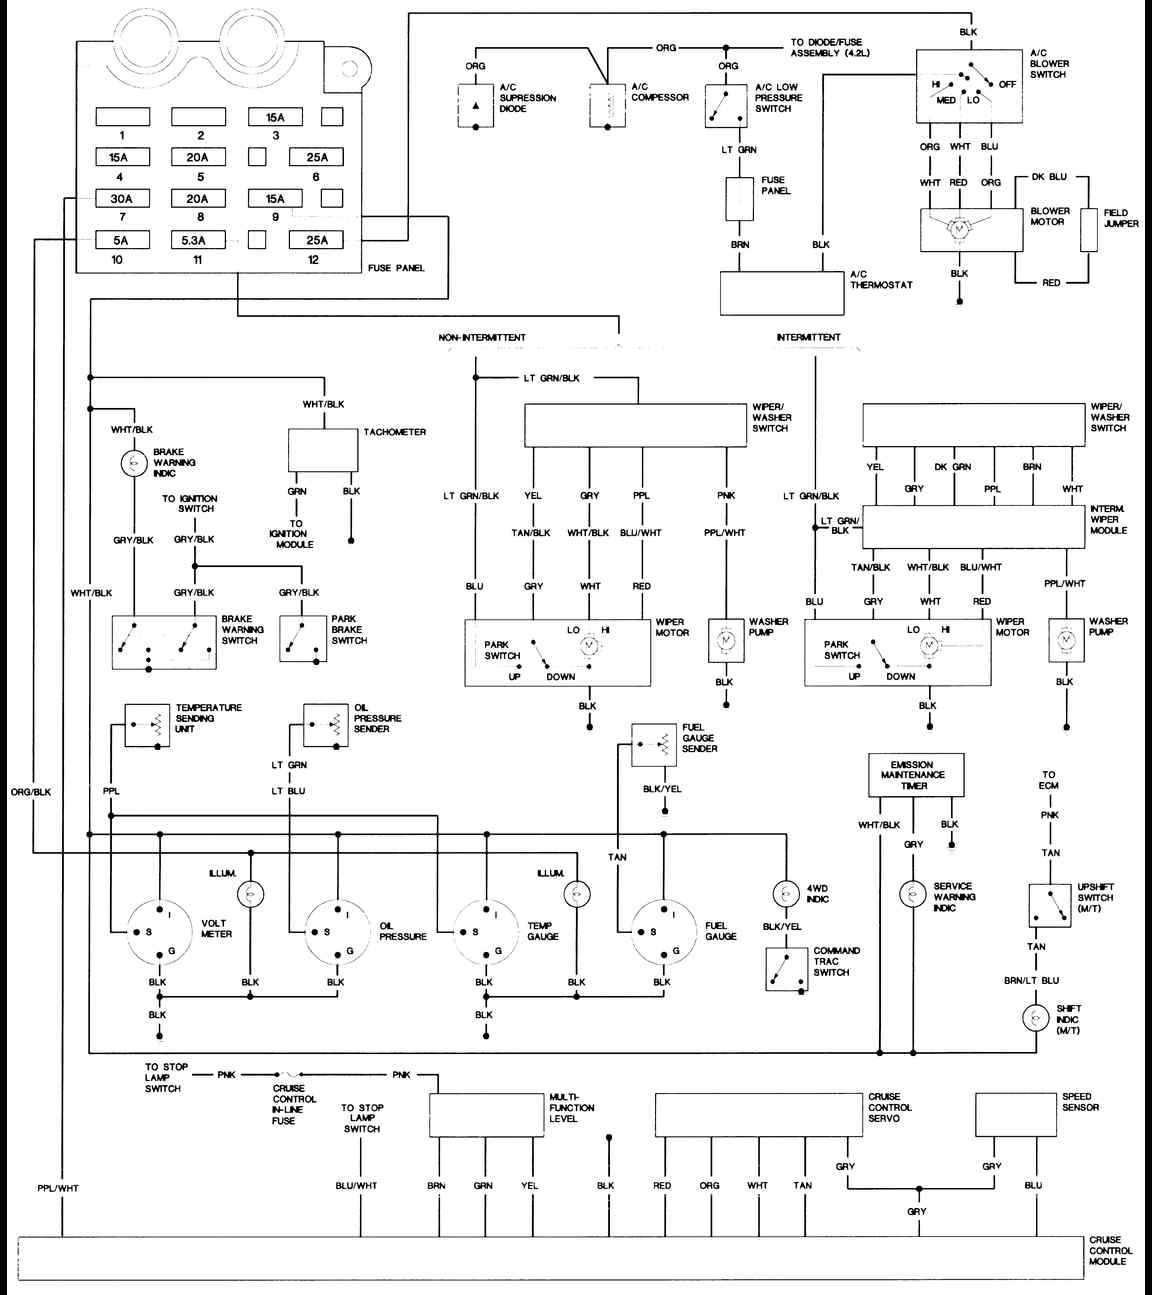 89 Comanche Wiring Diagram | Wiring Liry on